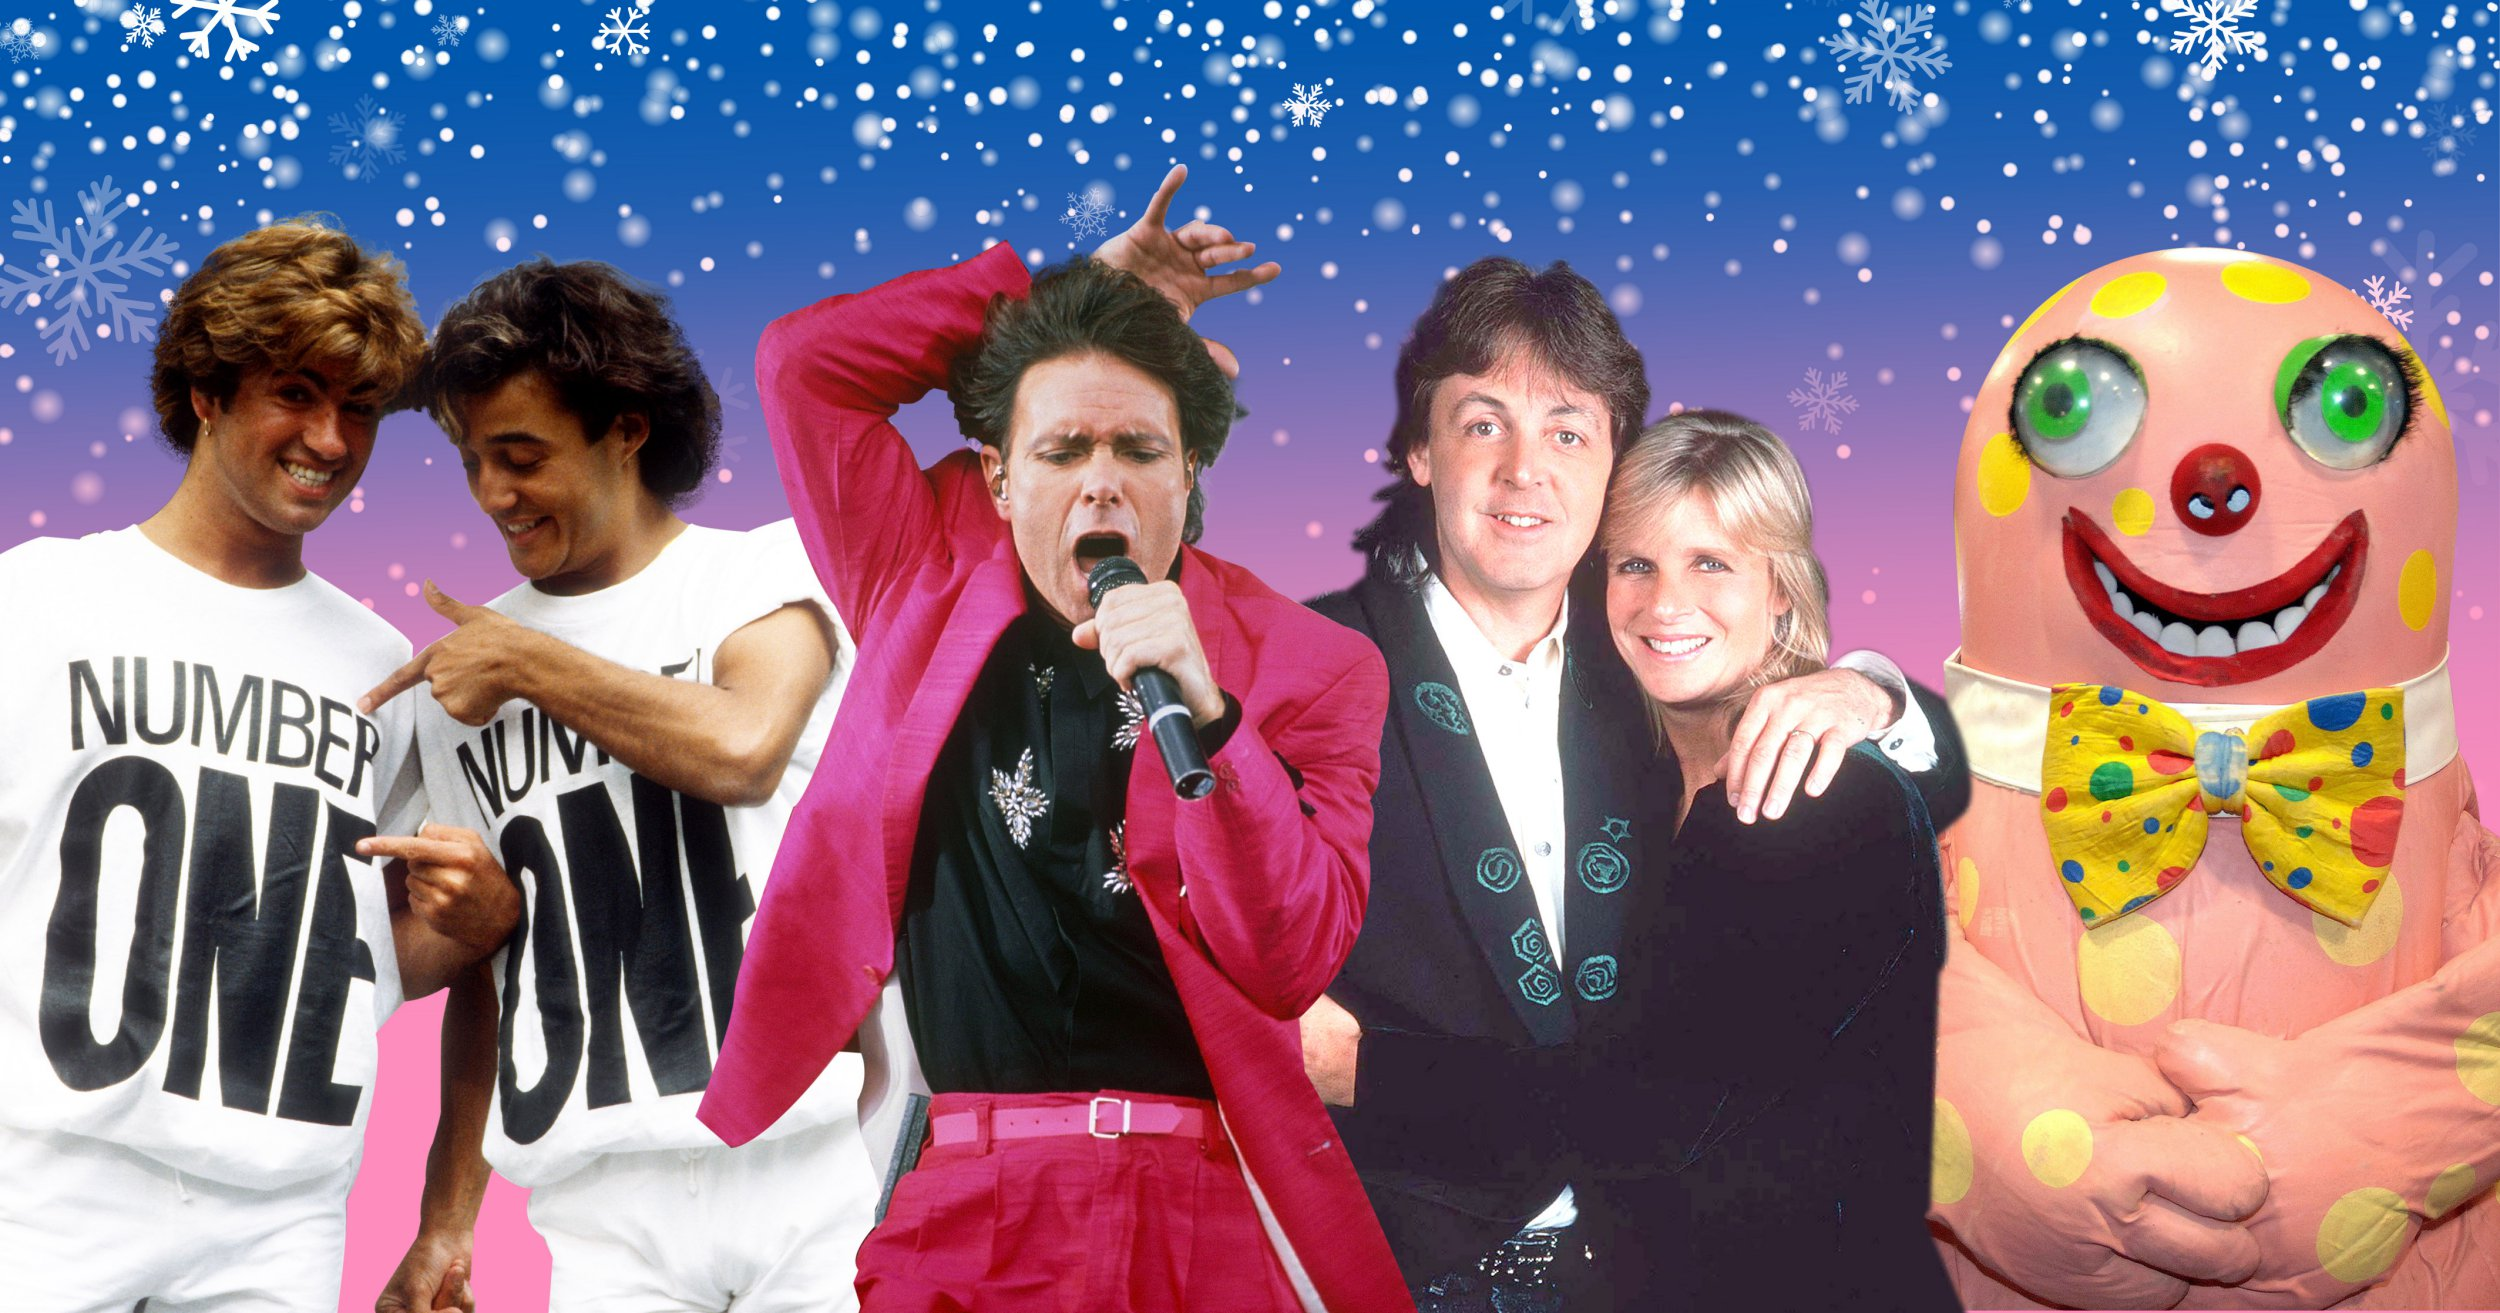 The 20 most annoying Christmas songs – ranked from mildly irritating to pure evil